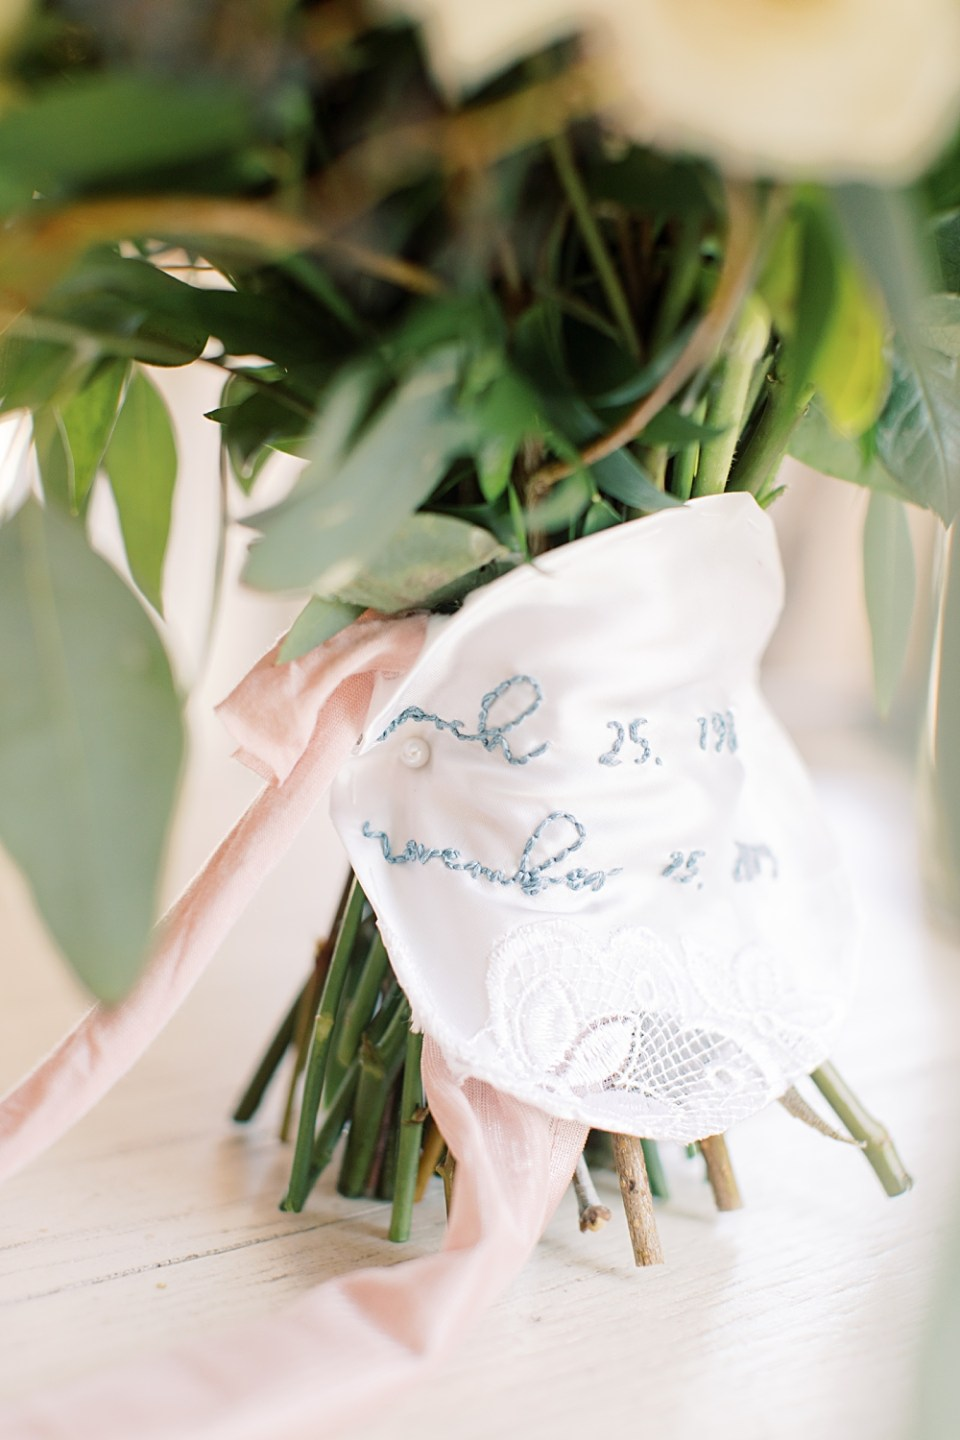 piece of mom's wedding dress | wedding day details | new jersey wedding photographer sarah canning